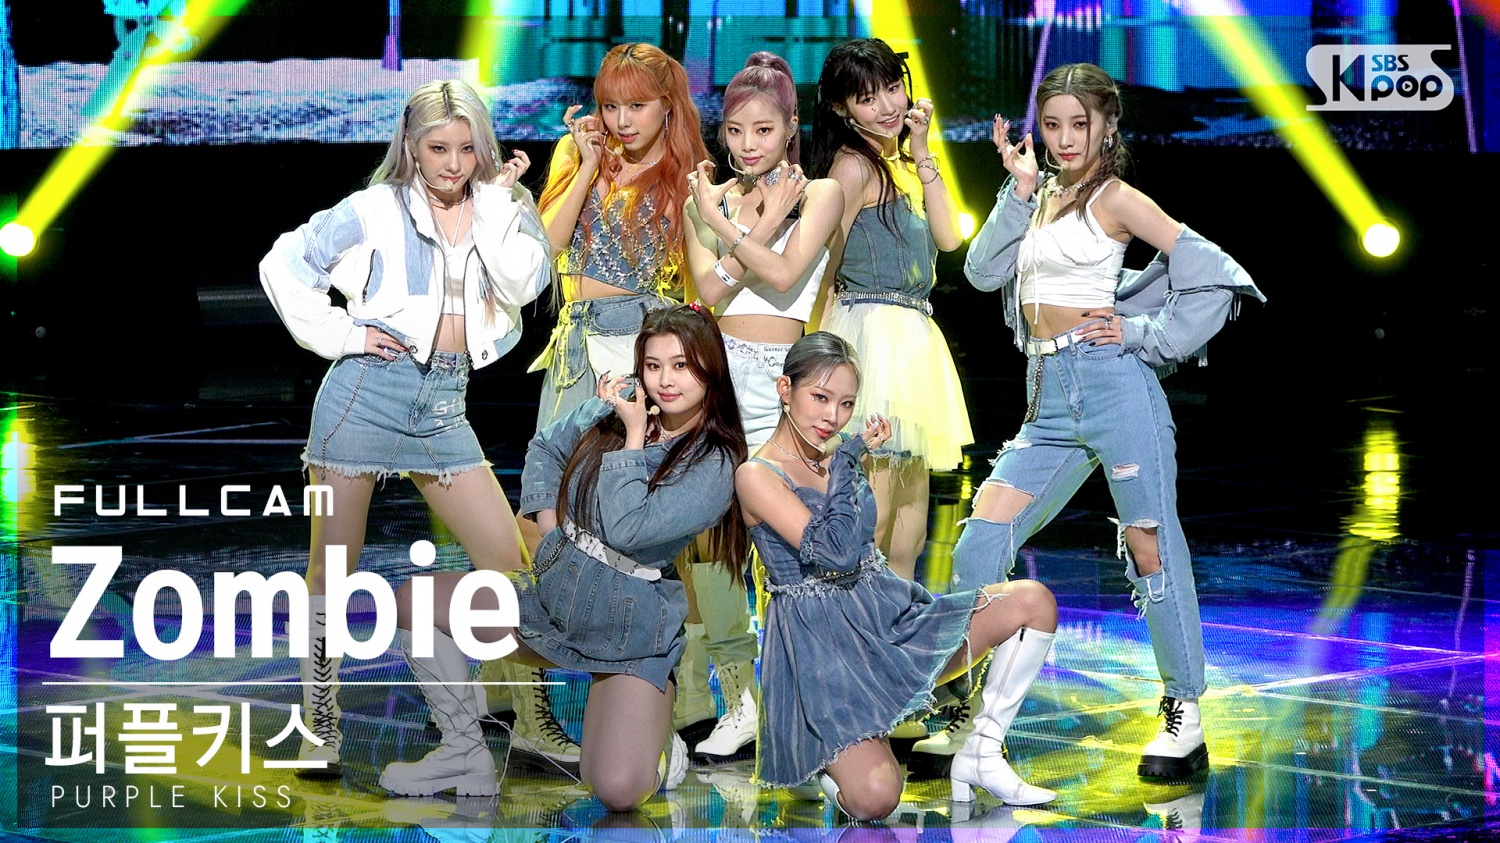 PURPLE KISS, 'Zombie' performance video released... That's why theme idols